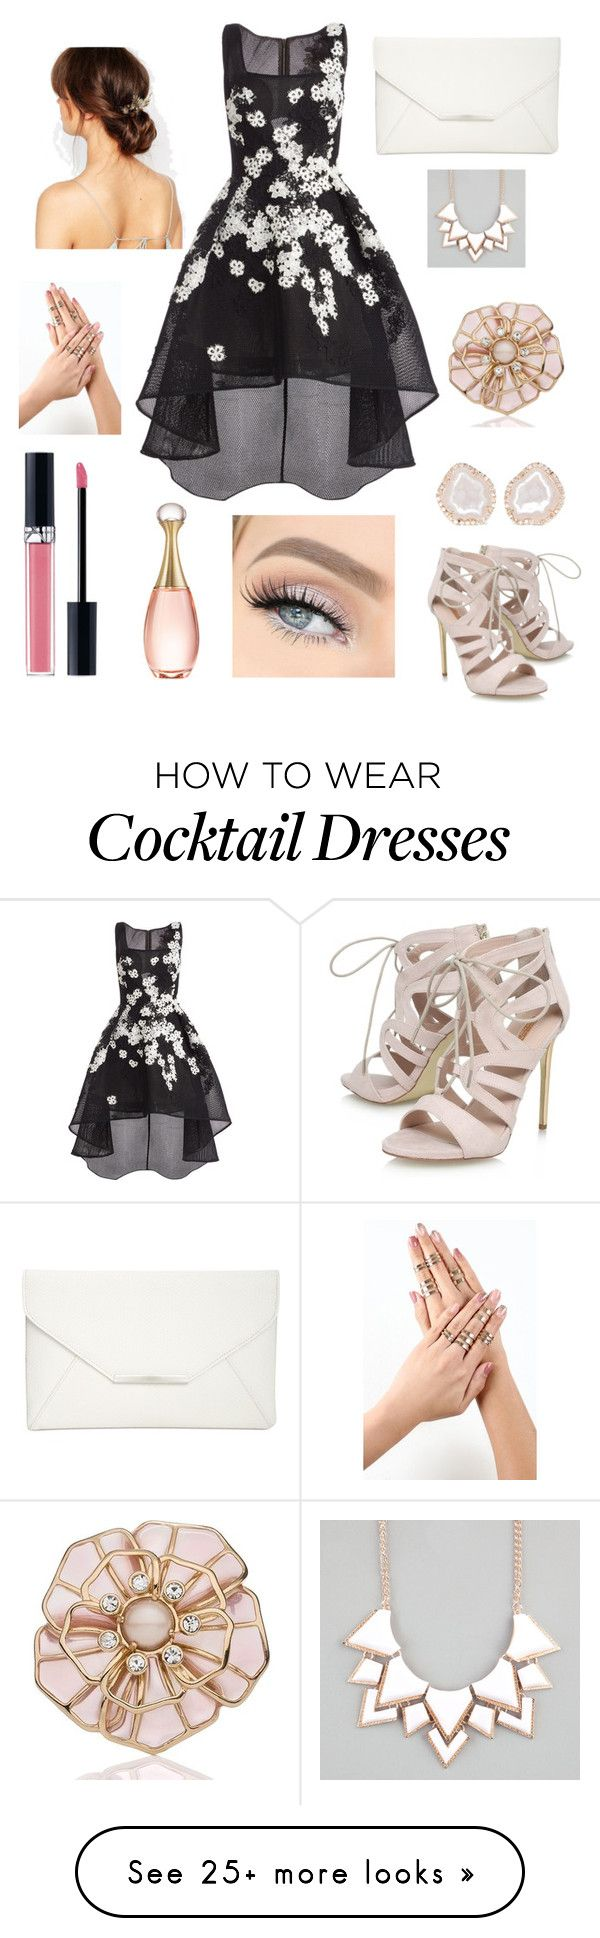 """Prom Queen"" by diannacoleman on Polyvore featuring Jovani, Carvela, Style & Co., Orelia, Kate Spade, Kimberly McDonald, Full Tilt and Christian Dior"